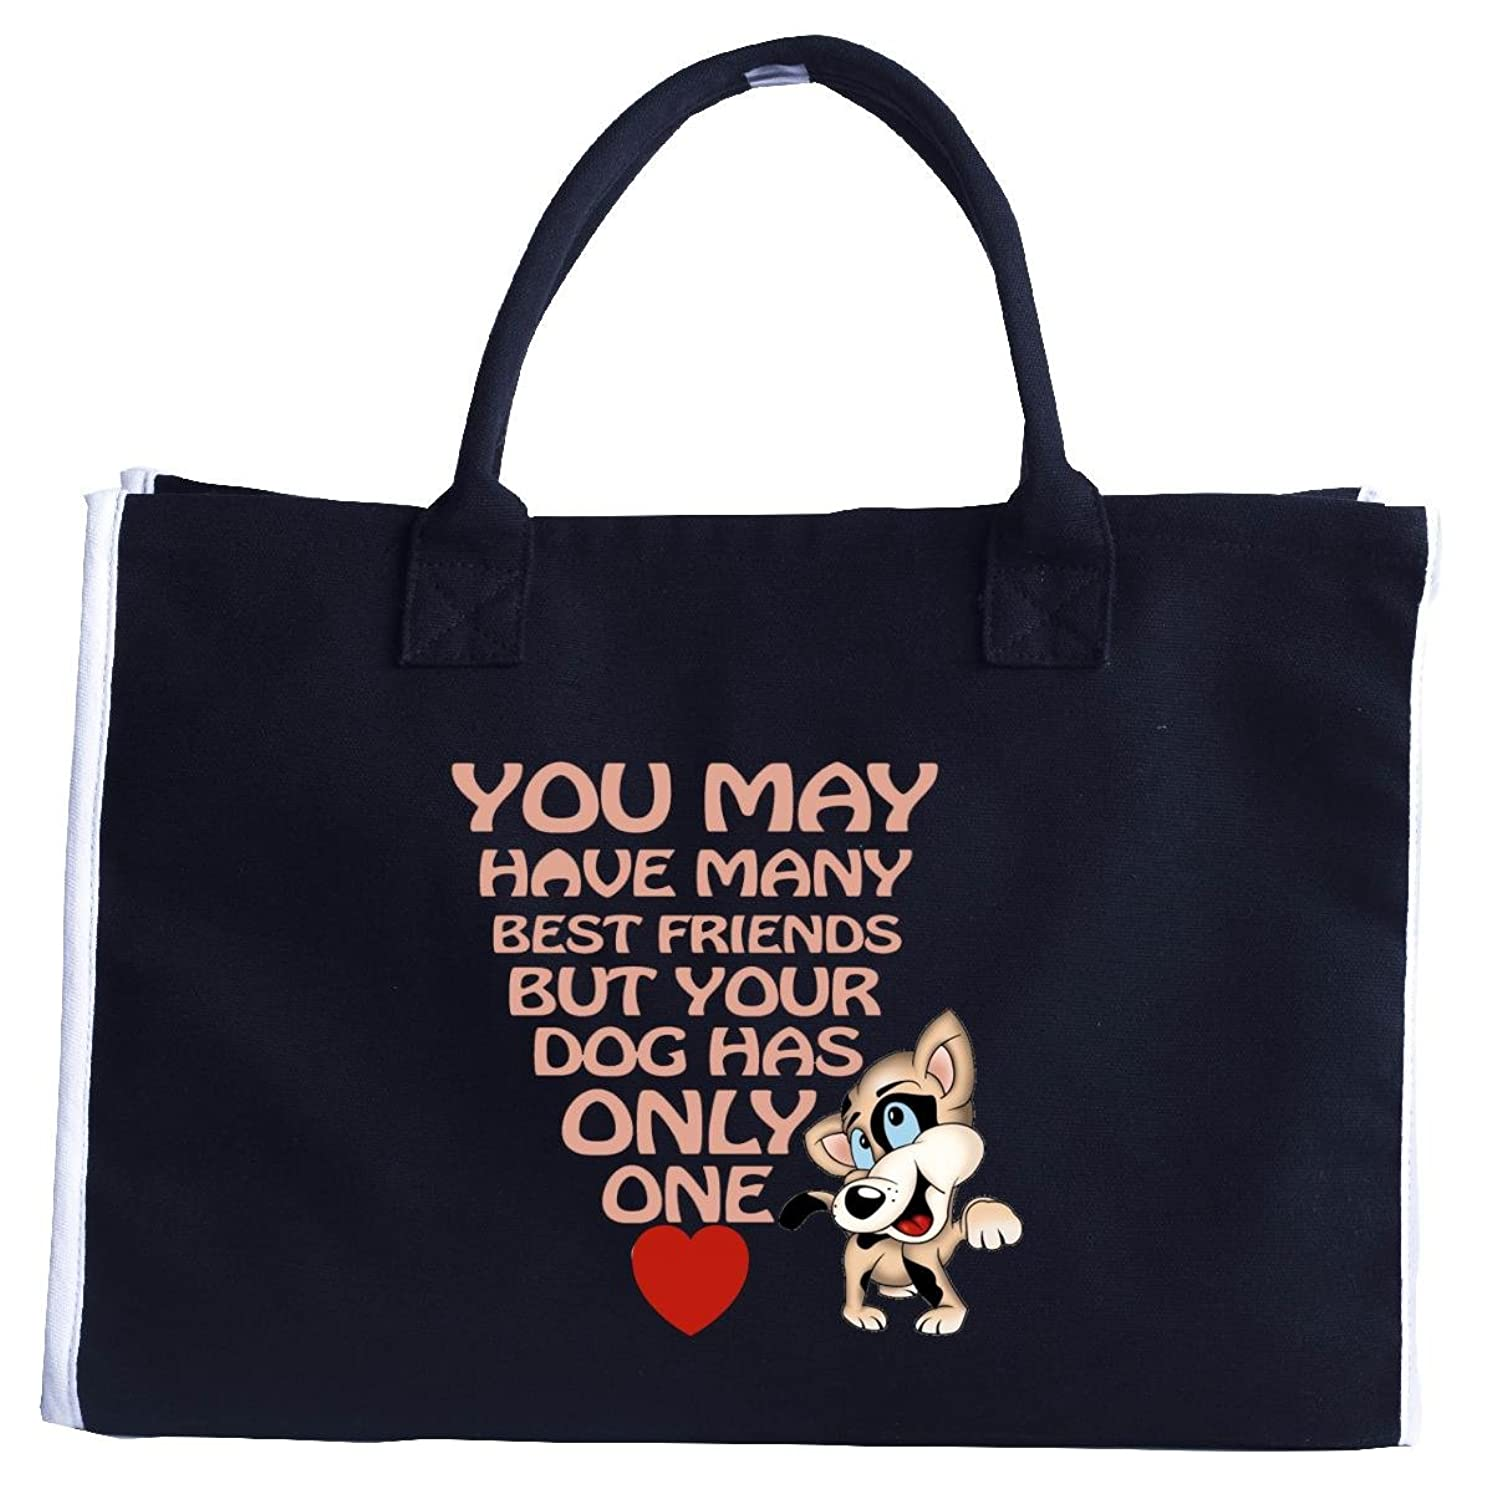 You May Have Many Friends But You Dog Has Only One - Tote Bag